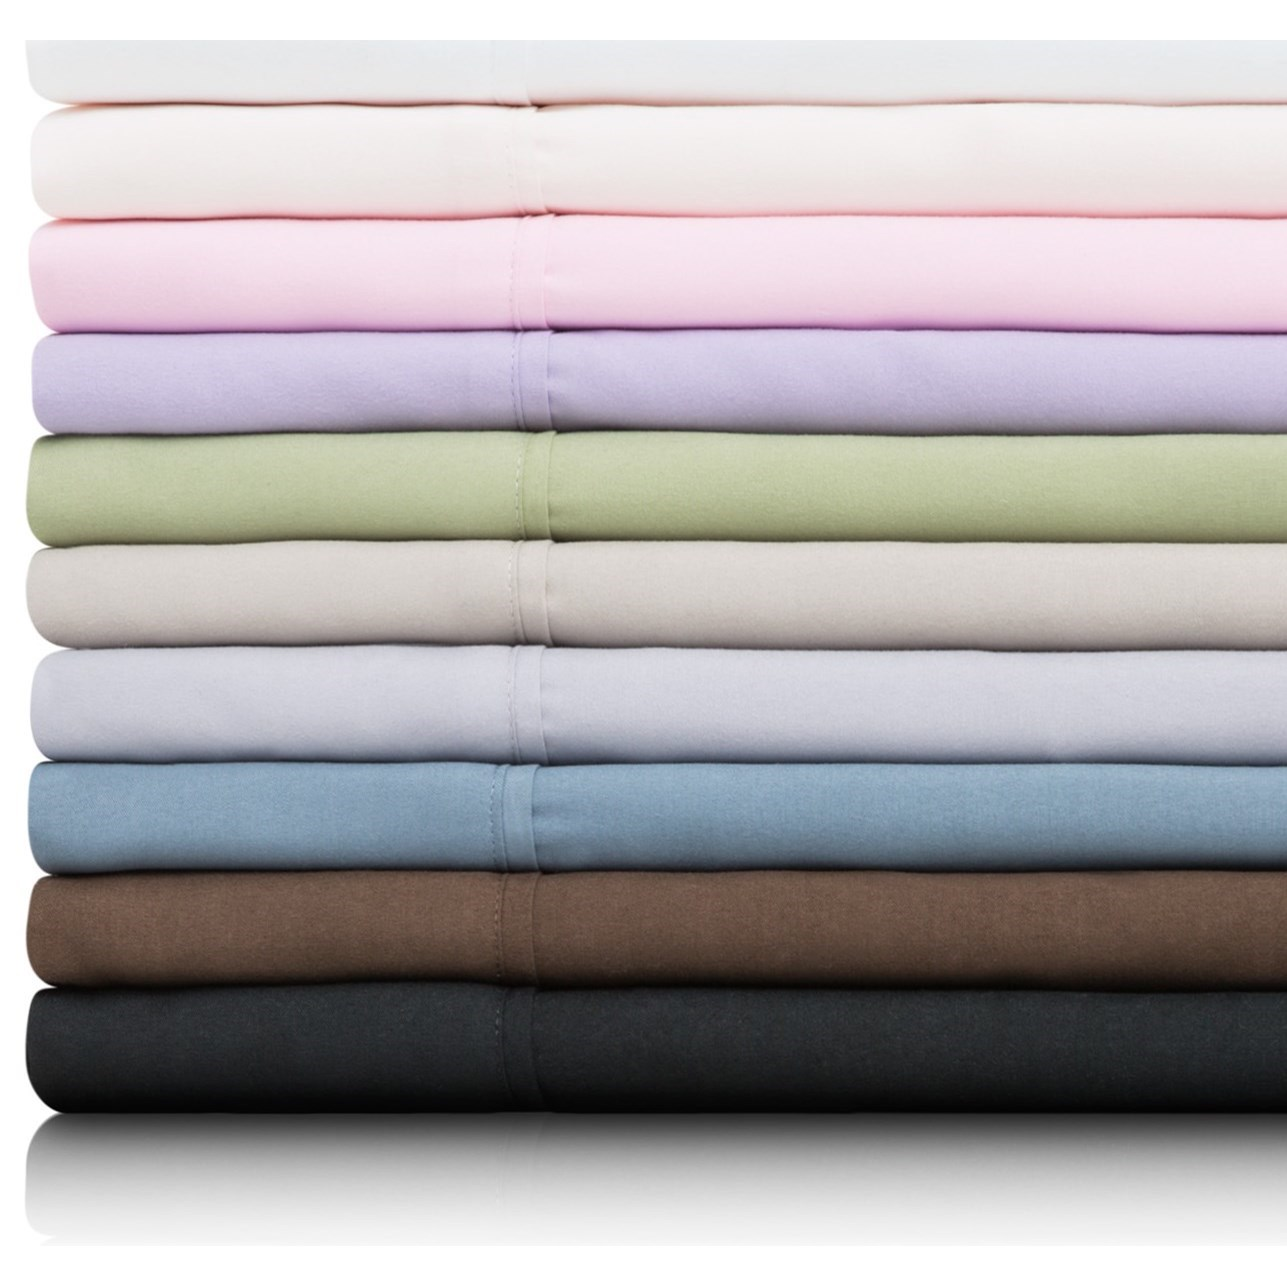 Malouf Brushed Microfiber Twin XL Woven™ Brushed Microfiber Sheet Set - Item Number: MA90TXFEMS